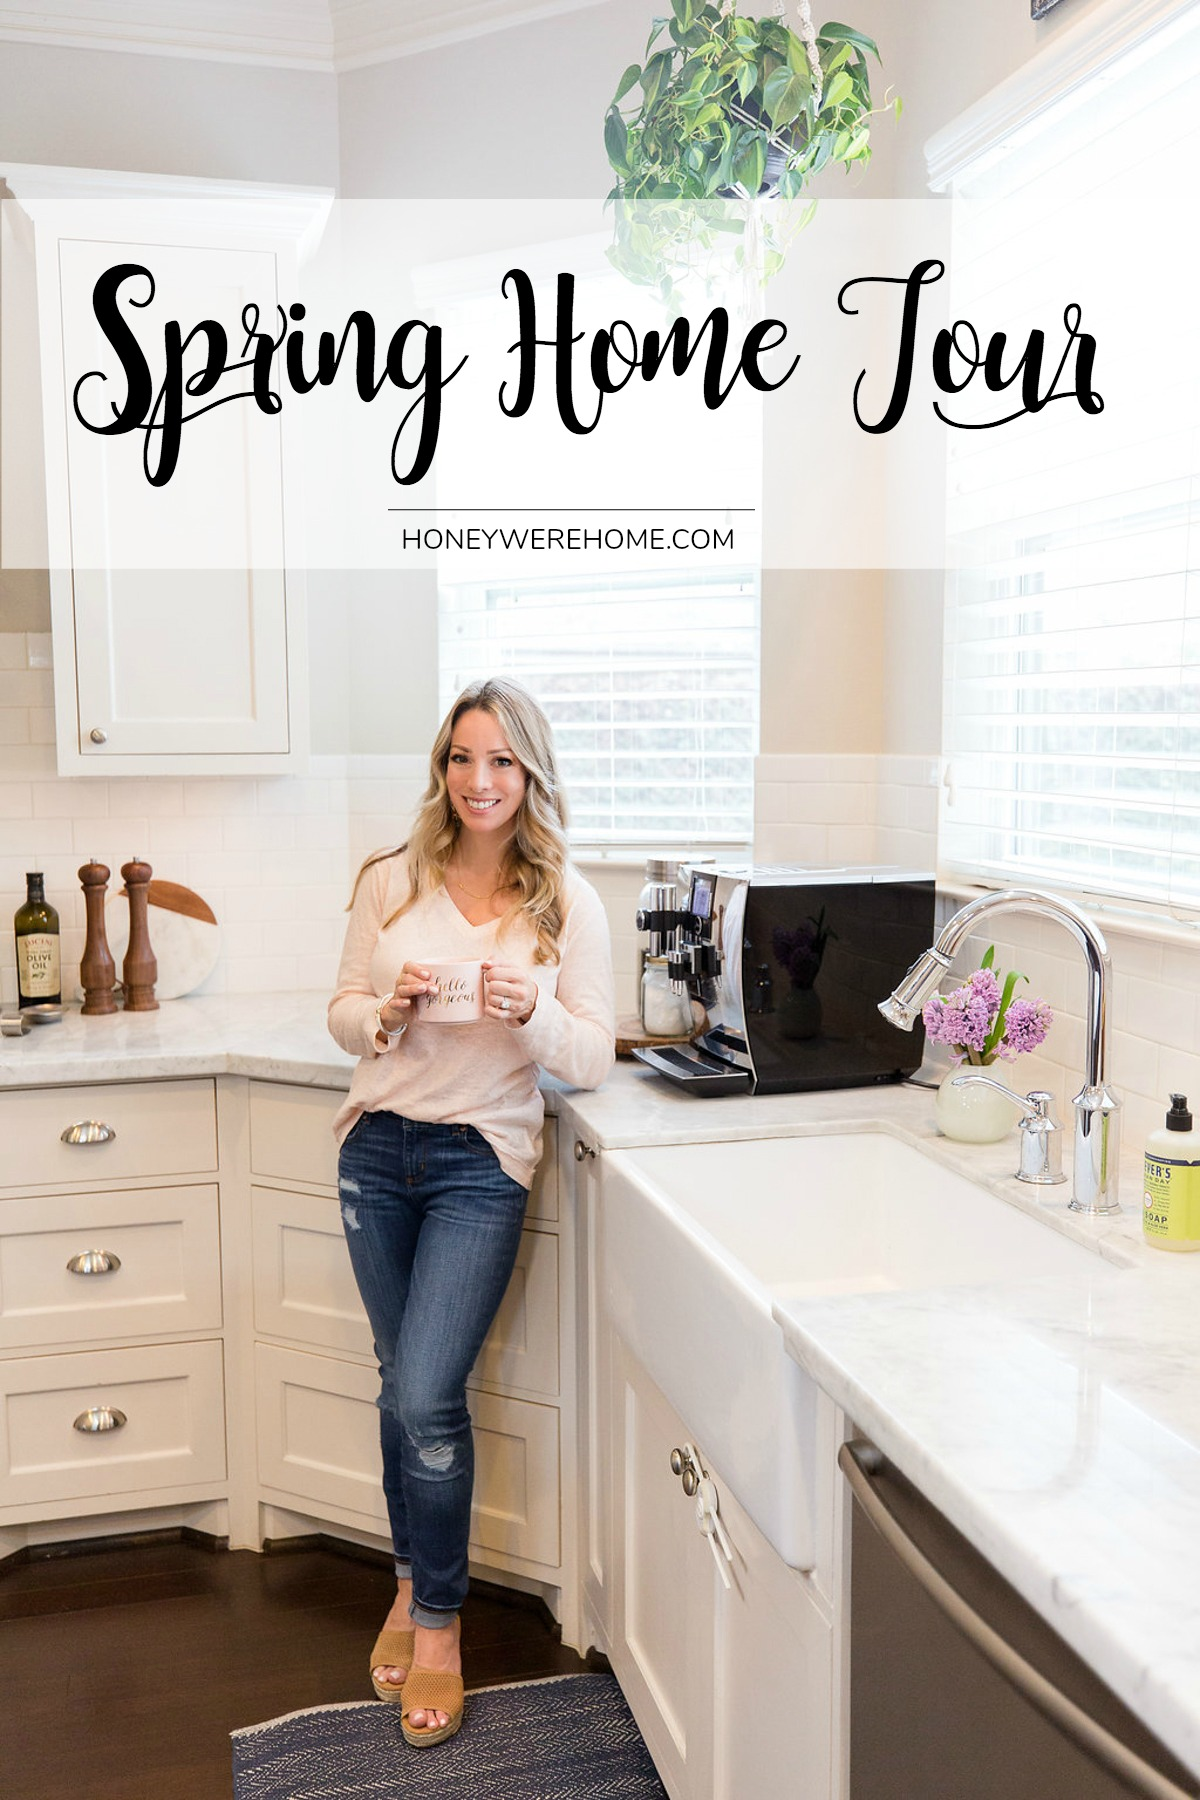 Spring Home Tour | Honey We're Home on pinterest easter crafts and decorations, pinterest easter decorations for a chirstmas tree, pinterest easter decorations for the home, pinterest projects for easter, pinterest wreaths for easter, pinterest games for easter, pinterest holiday ideas, pinterest diy for easter, pinterest easter table arrangements, pinterest crafts for easter, pinterest centerpieces for easter, pinterest spring decor, pinterest table decorations, pinterest craft ideas for spring, pinterest cookies for easter,